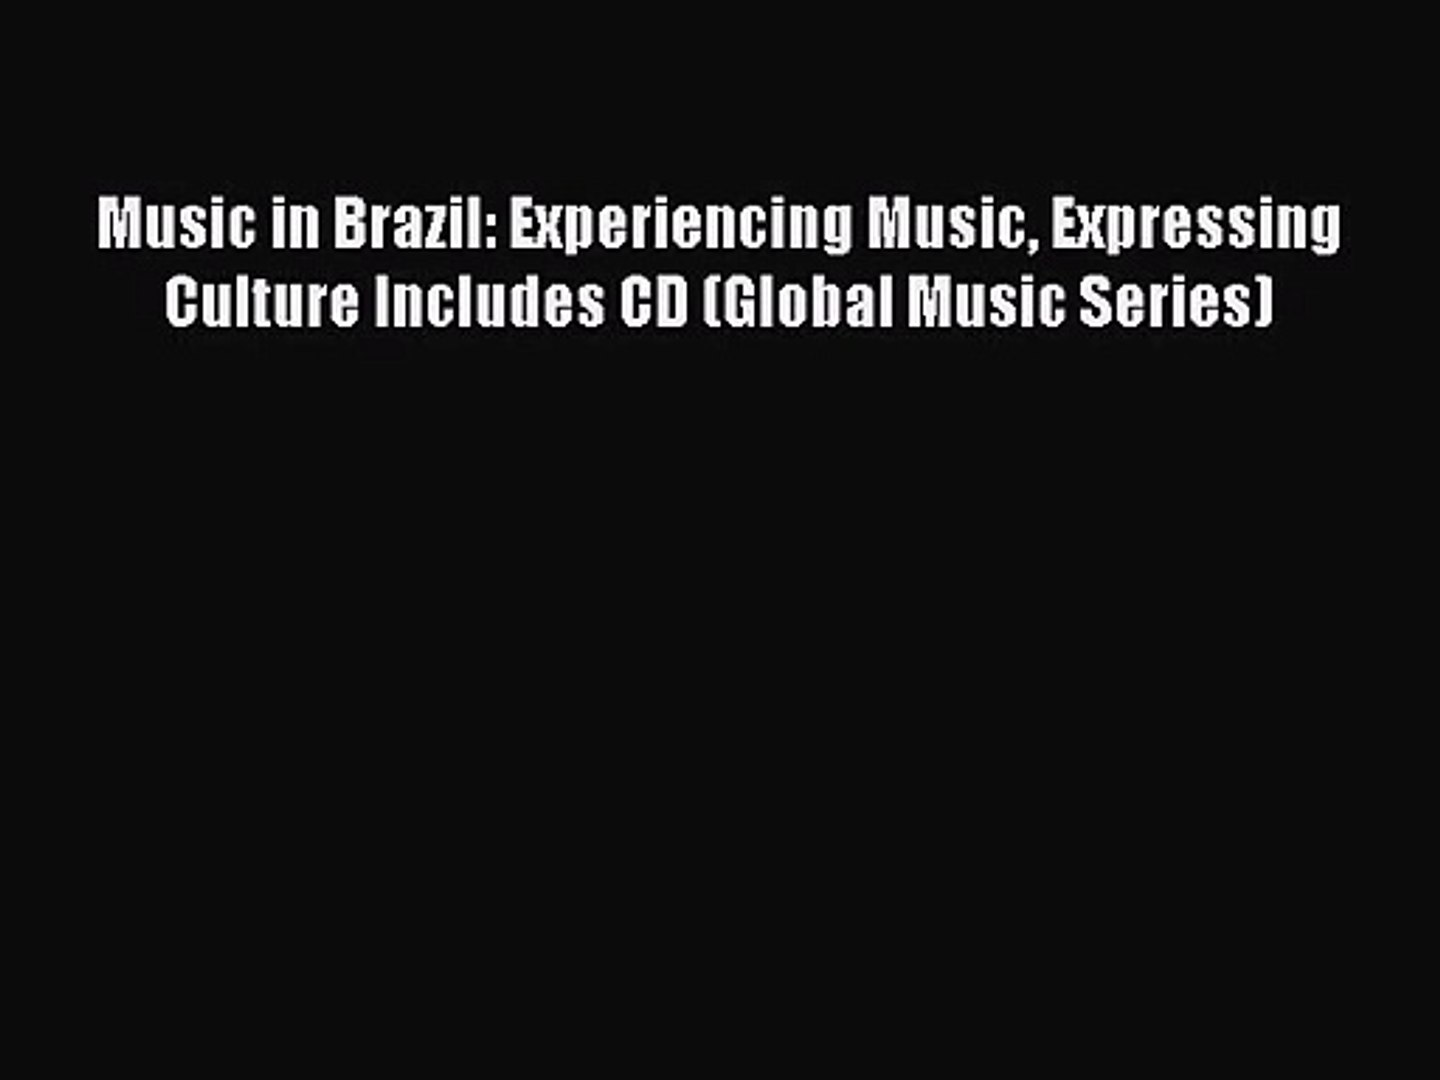 Download Music in Brazil: Experiencing Music Expressing Culture Includes CD (Global Music Series)